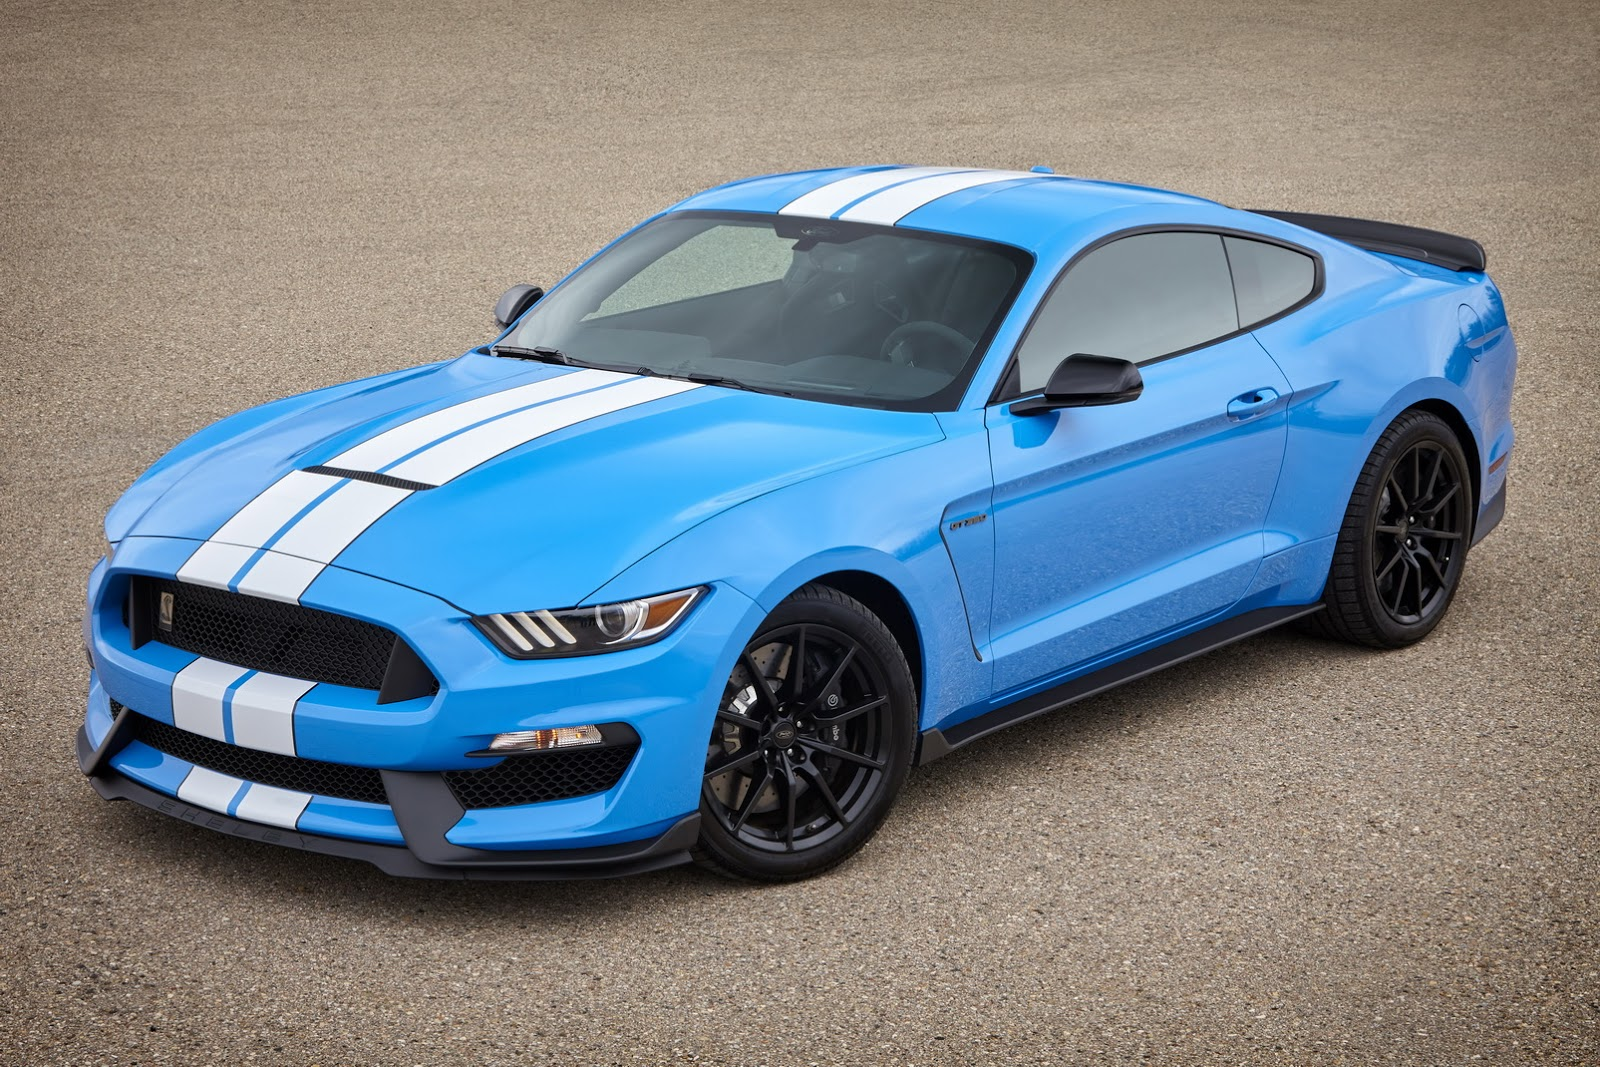 Ford shelby photo - 10